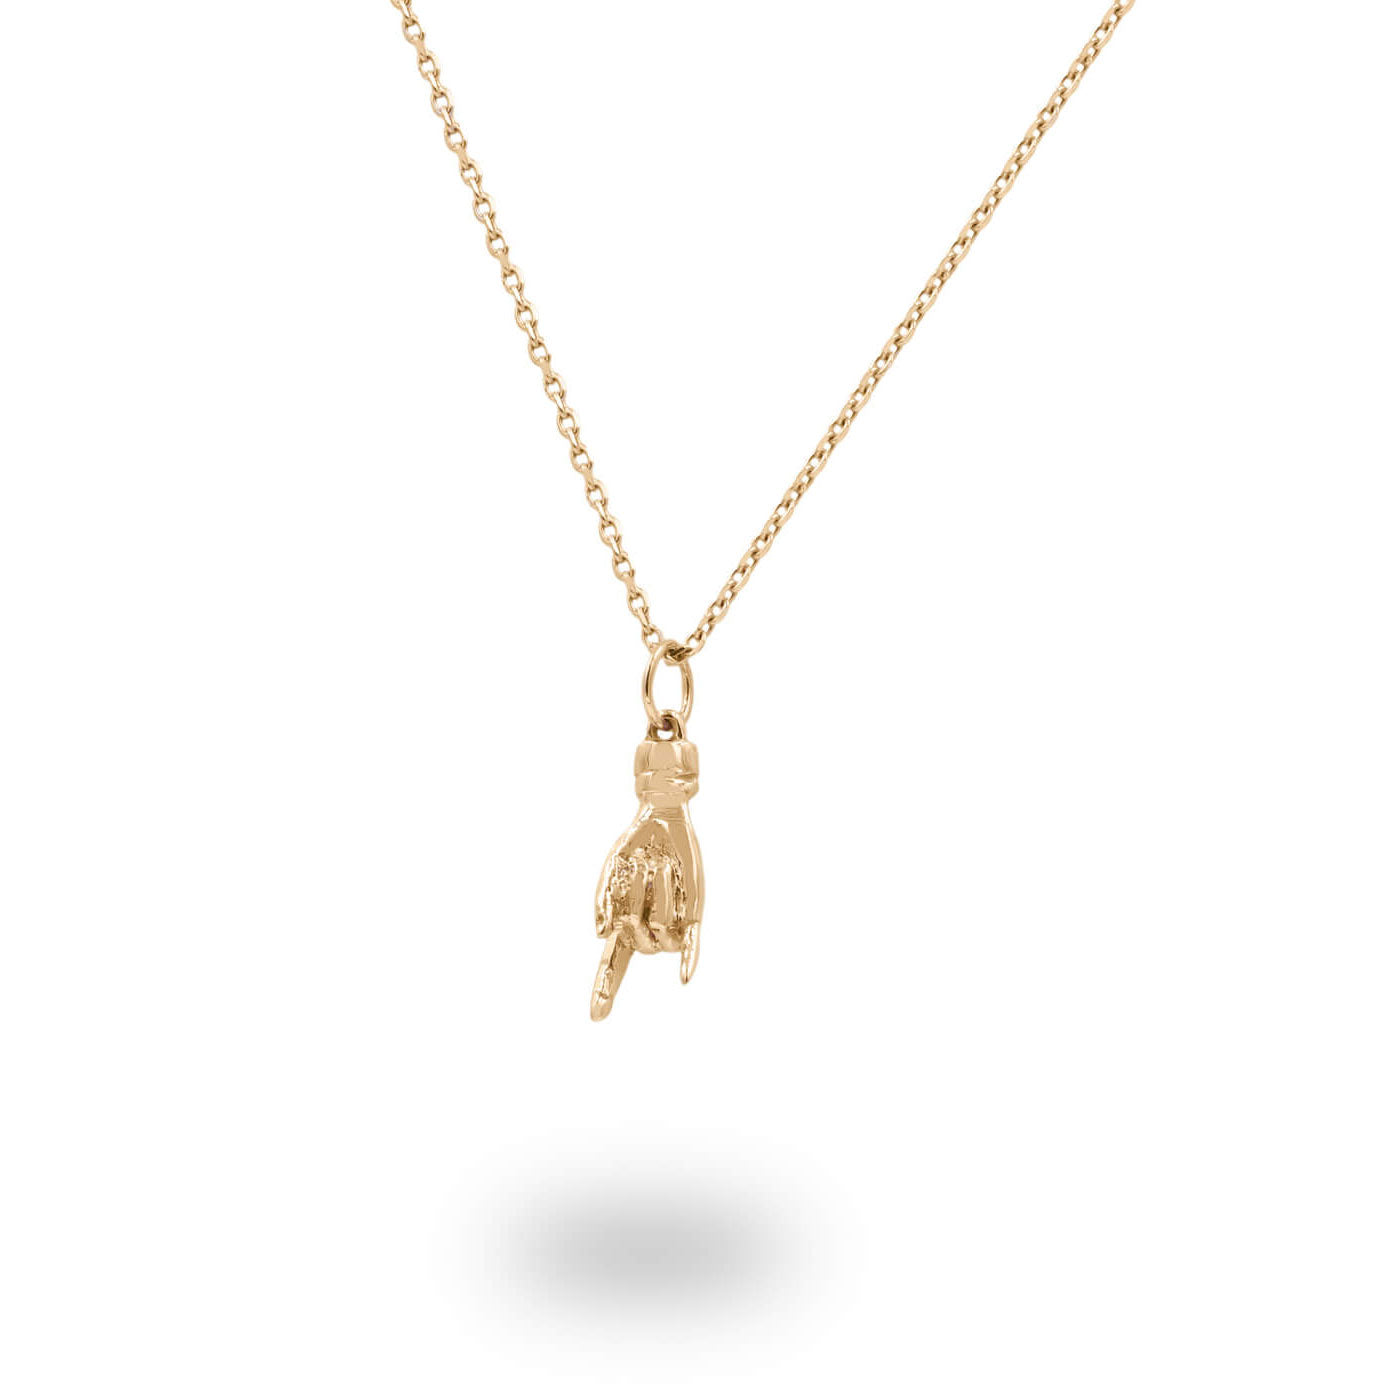 Italian Hand Good Luck Charm Pendant In Solid 14K Yellow Gold